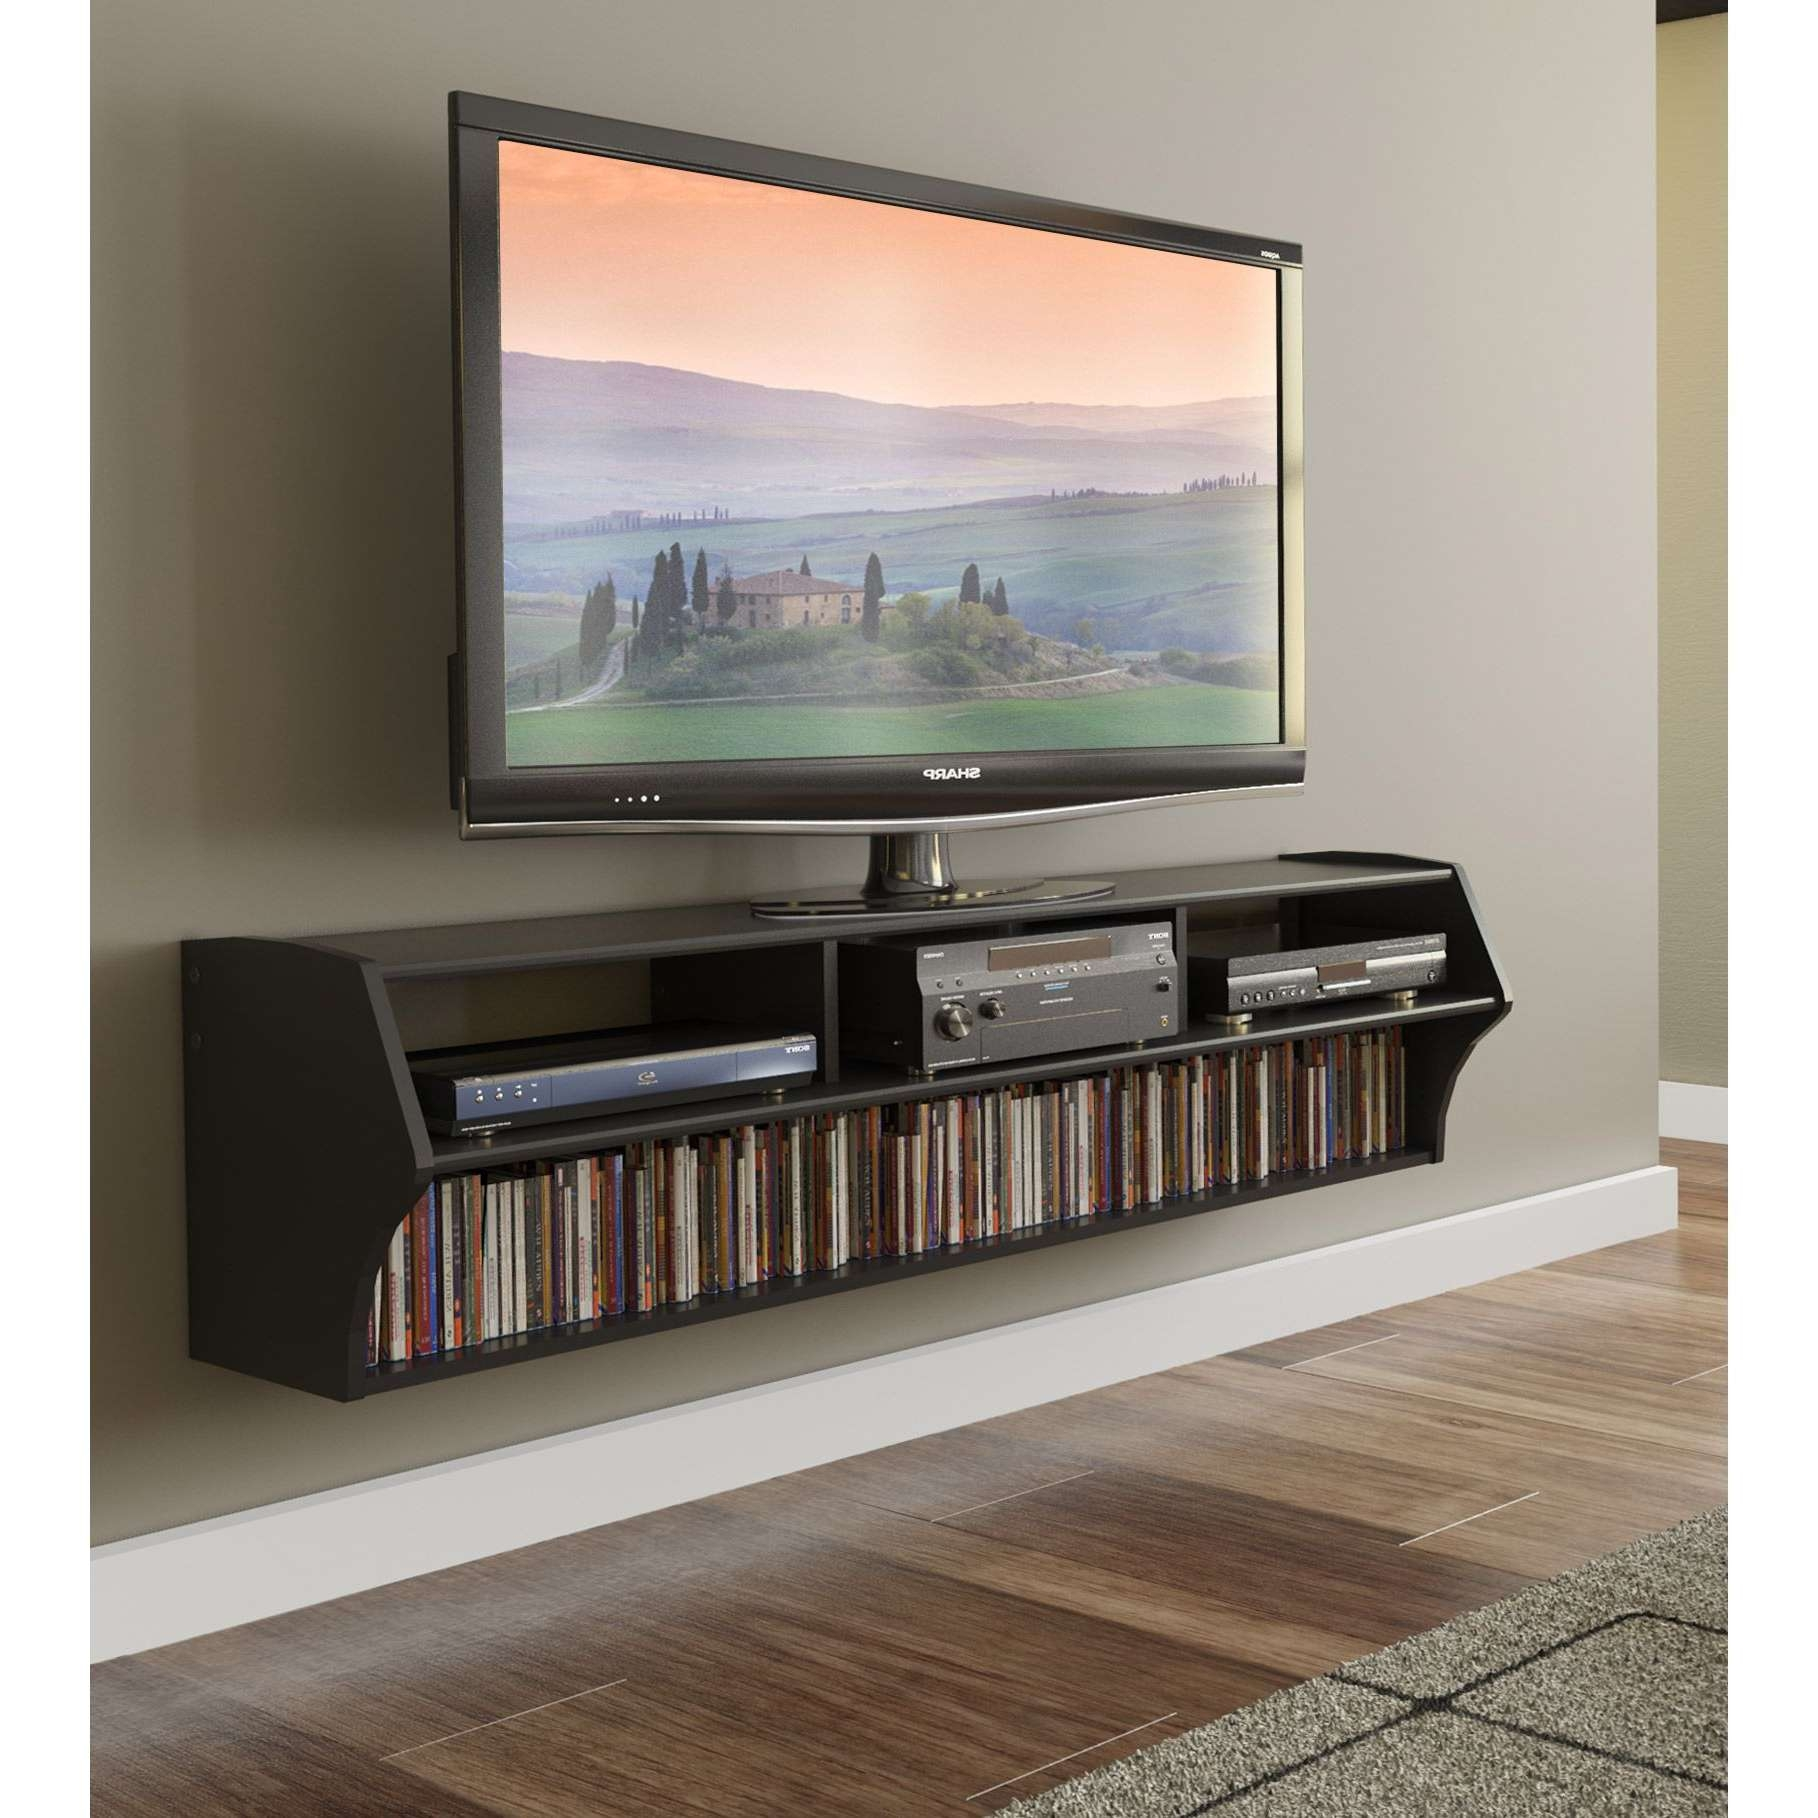 Cabinet: Cozy Laminate Wood Flooring With White Baseboard And Best Throughout Long Wood Tv Stands (View 8 of 15)